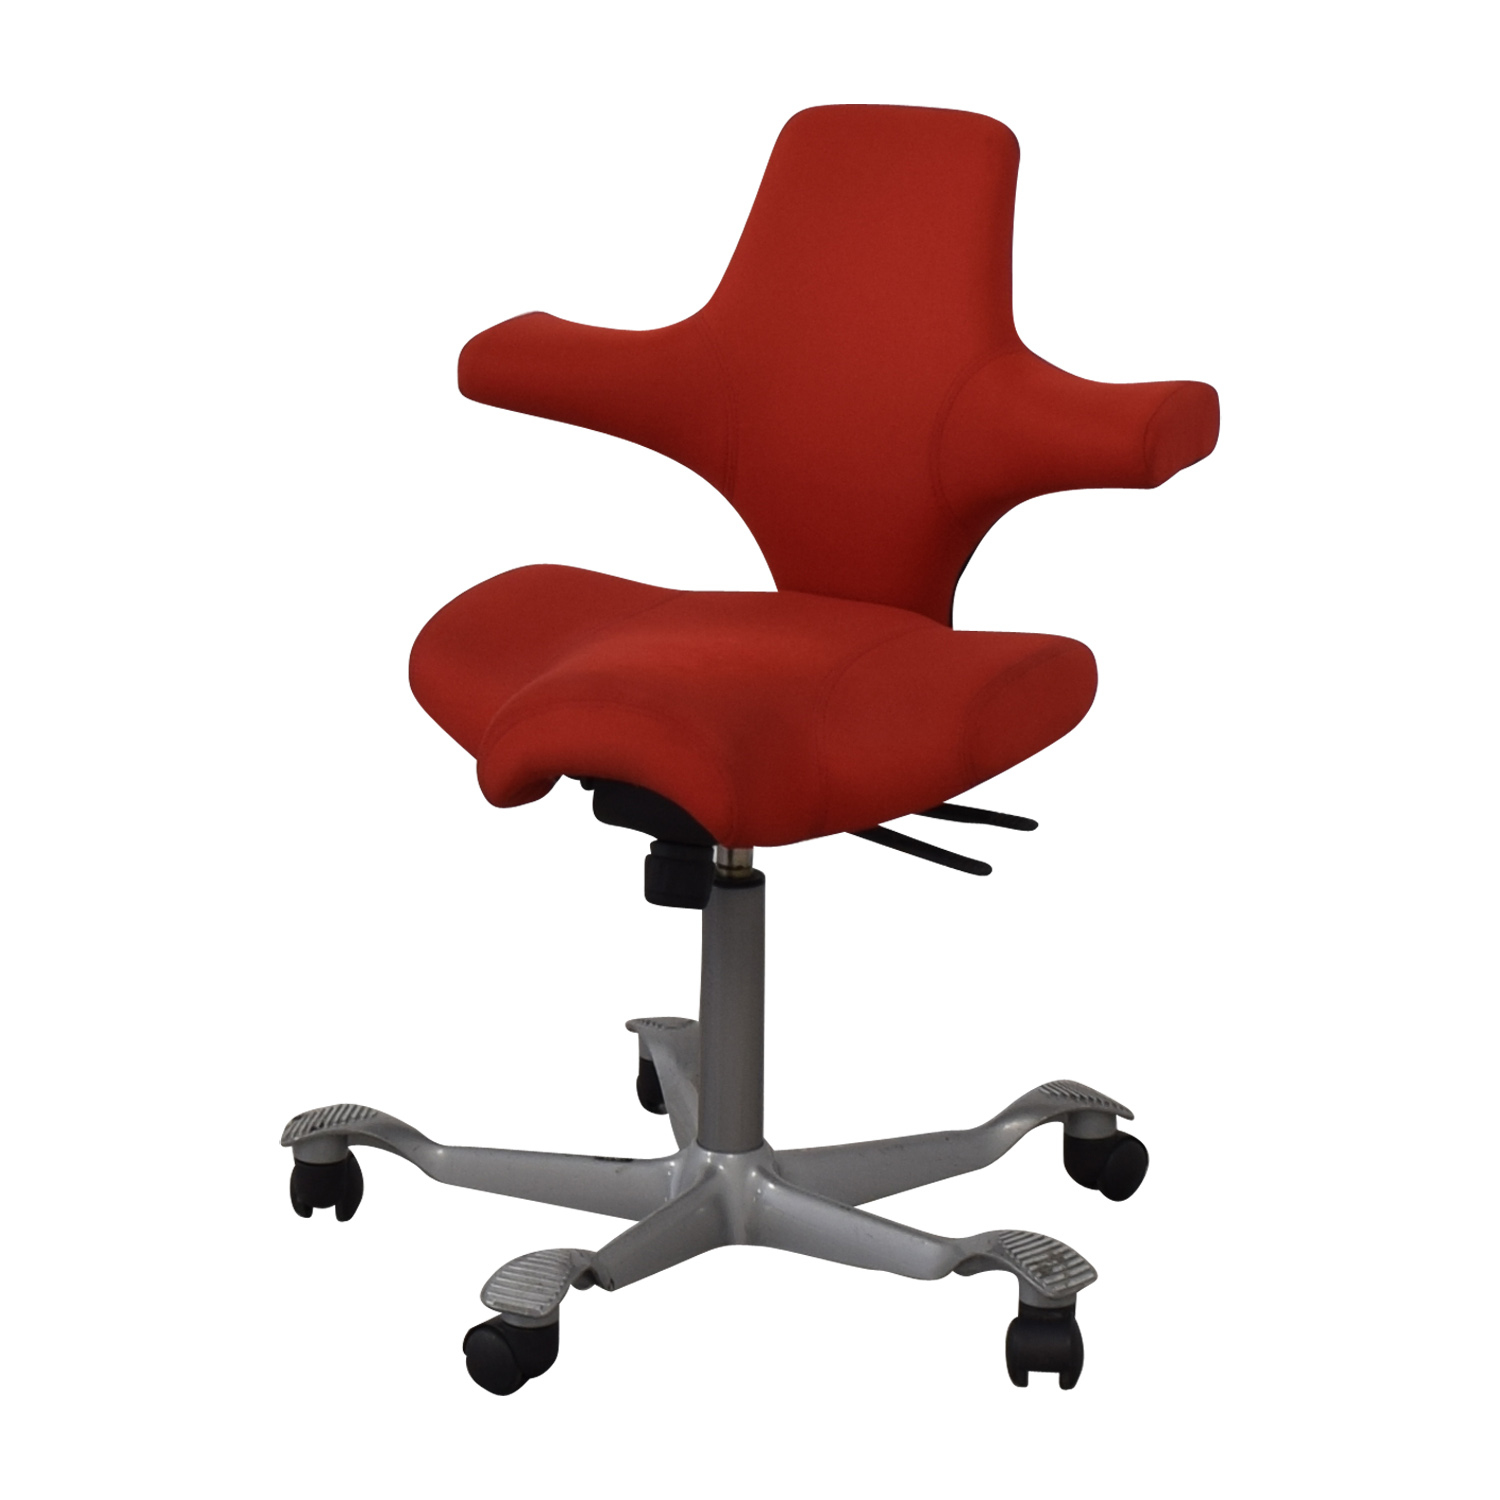 Fine 77 Off Hag Hag Capisco Office Chair Chairs Caraccident5 Cool Chair Designs And Ideas Caraccident5Info